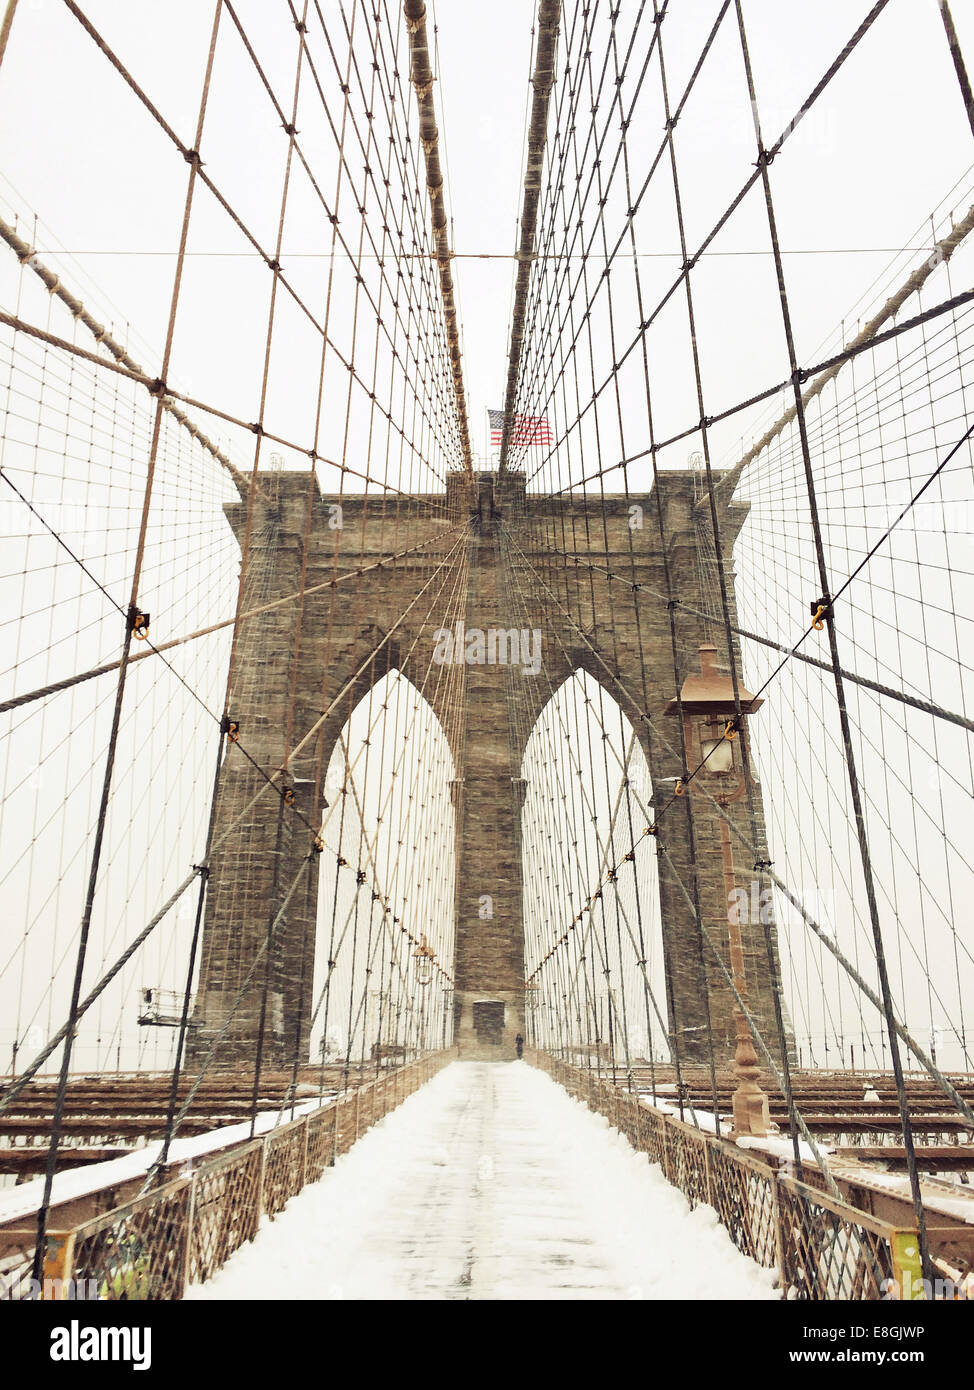 Brooklyn Bridge in snow, New York, America, USA - Stock Image